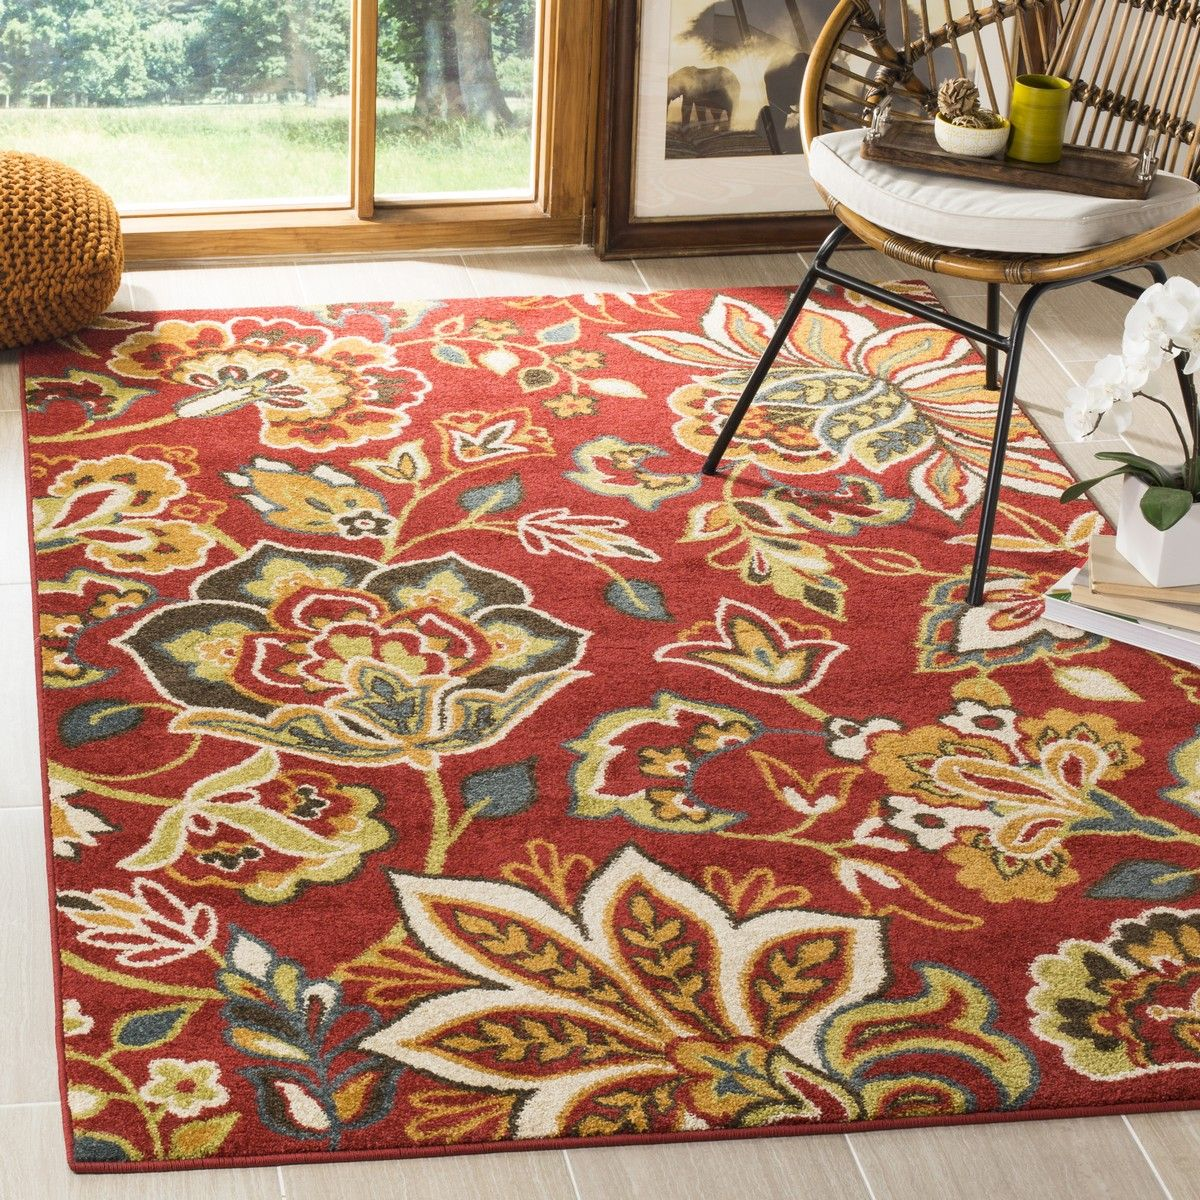 Rug Nwb8700 4012 Newbury Area Rugs By Rugs Area Rugs Accent Rugs